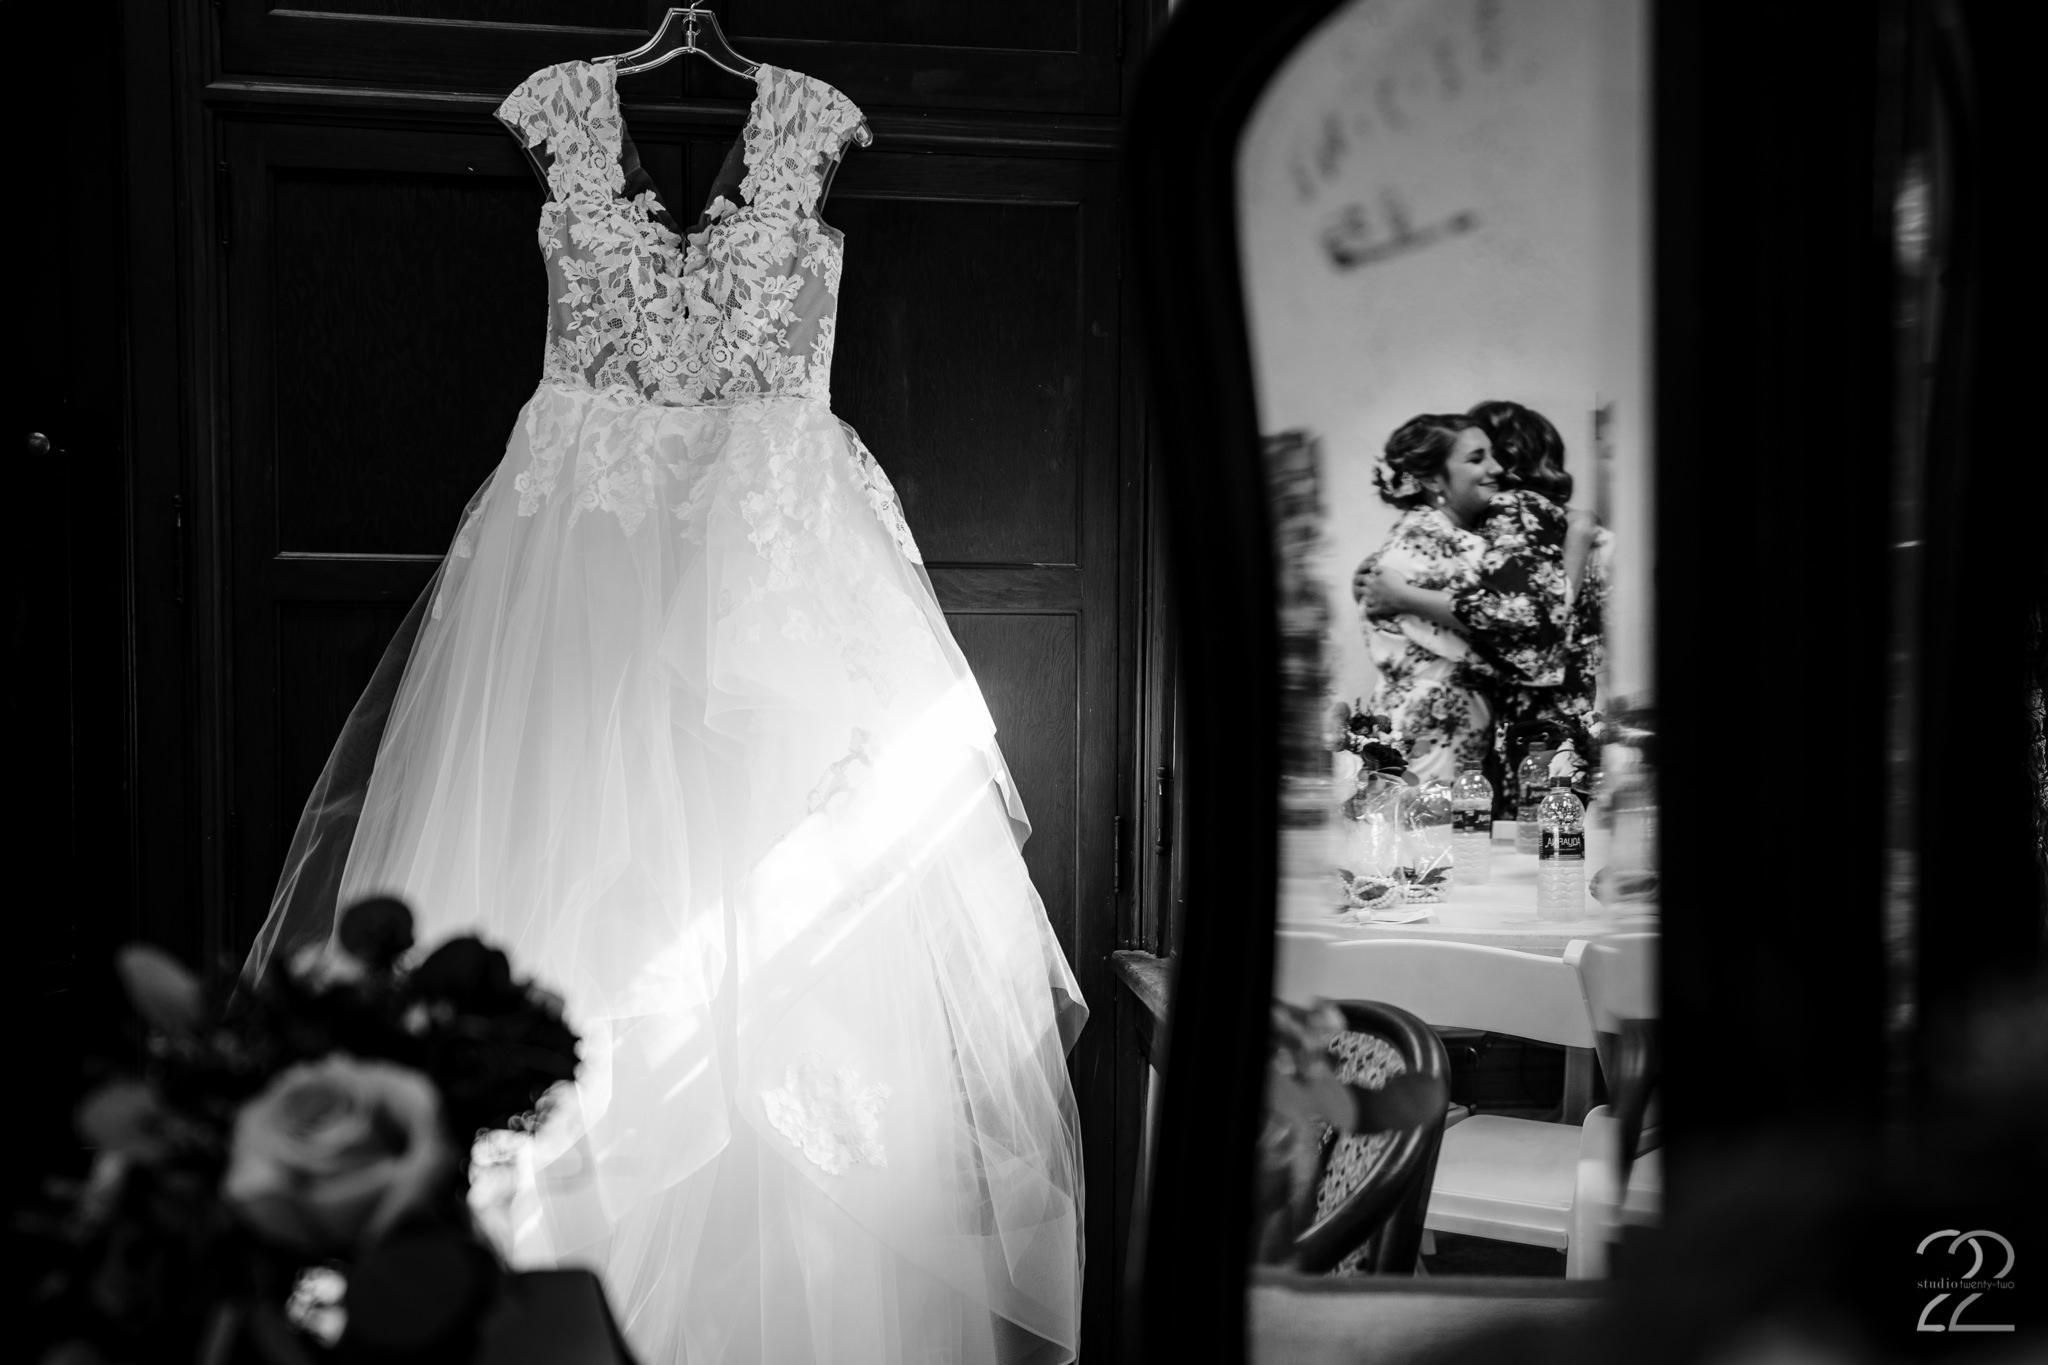 Details mean nothing without the people to enjoy them. Capturing this detail shot of Cassie's wedding dress at Krippendorf Lodge in Cincinnati, with a refection of a genuine emotional embrace, gives what could be a static photo more life and meaning.